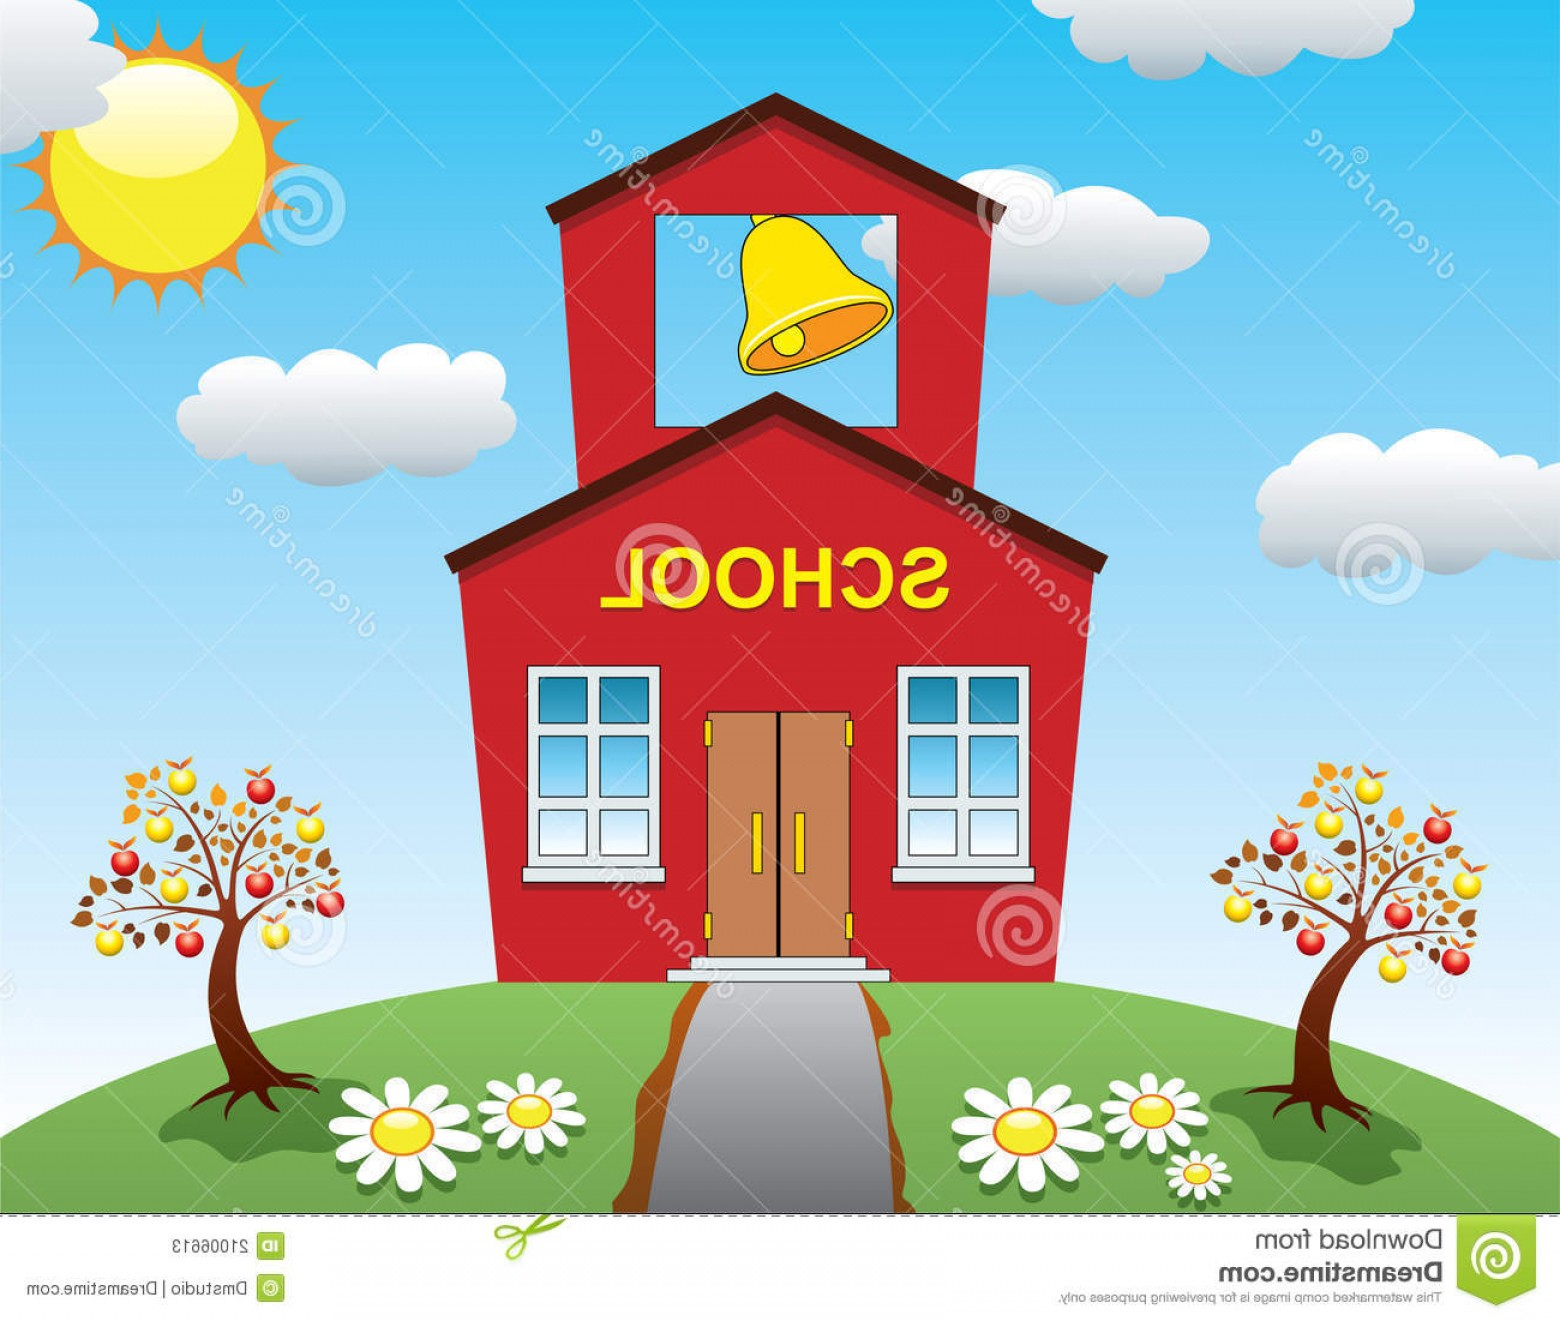 Vector Clip Art Red Schoolhouse: Stock Photos School House Apple Trees Image